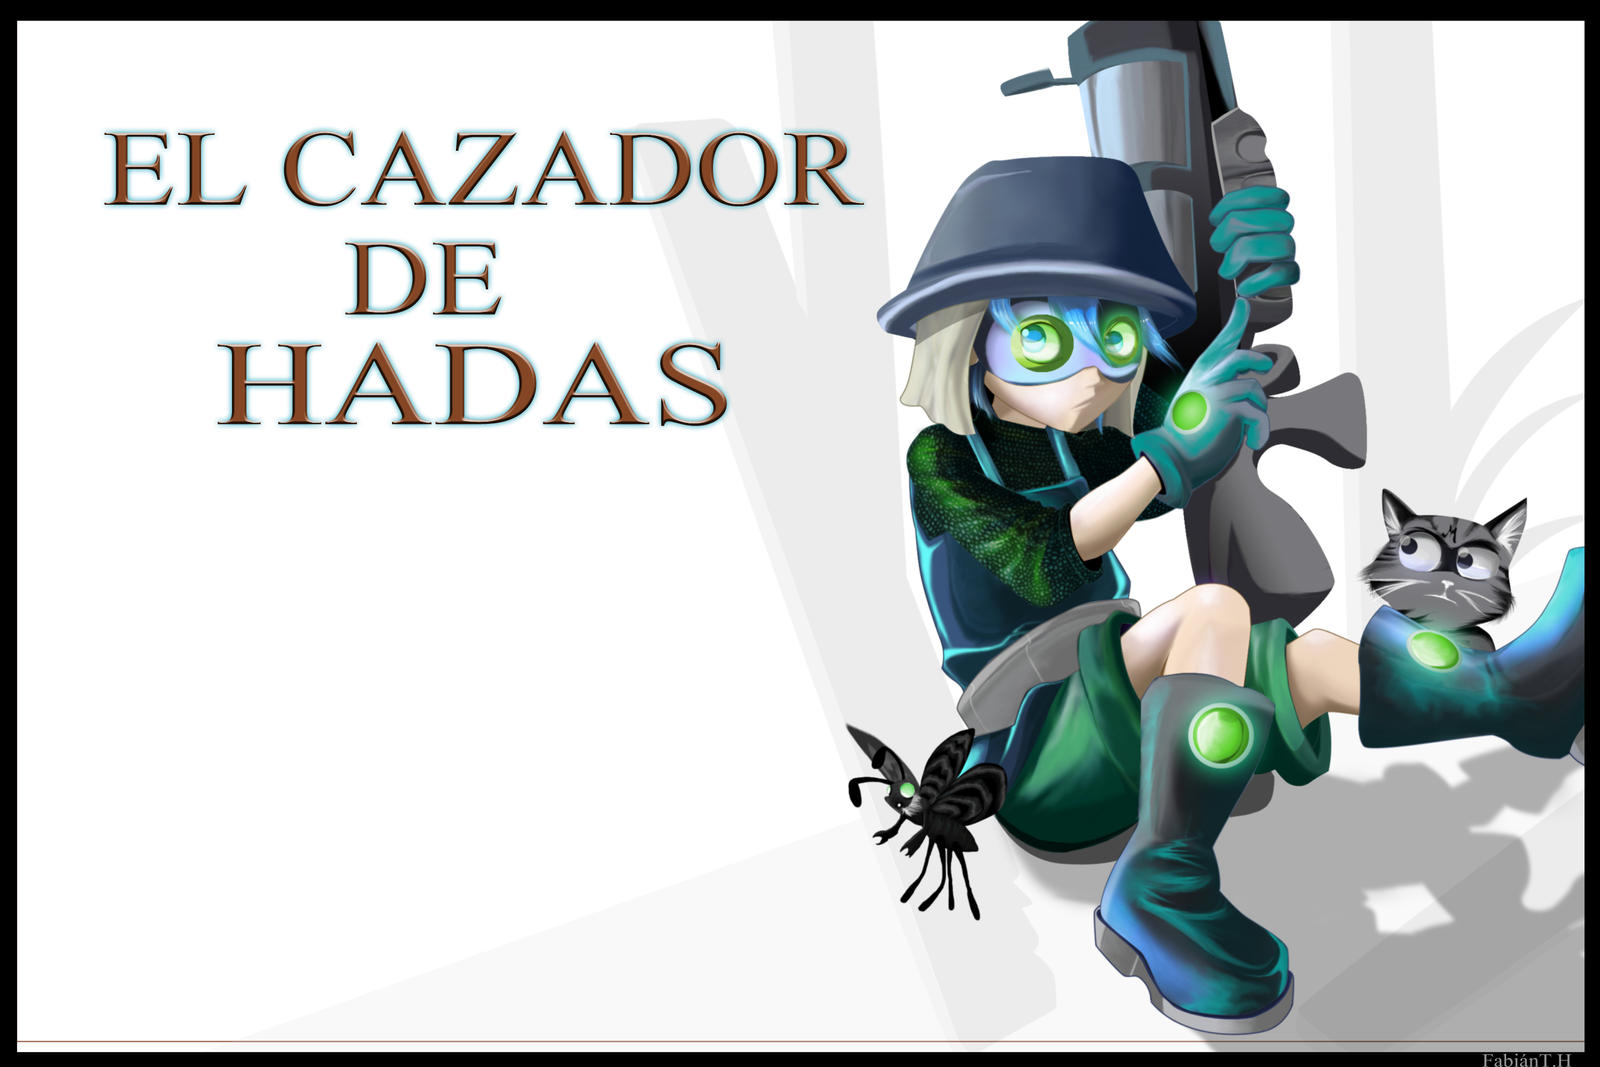 El Cazador de Hadas by Killerjaja